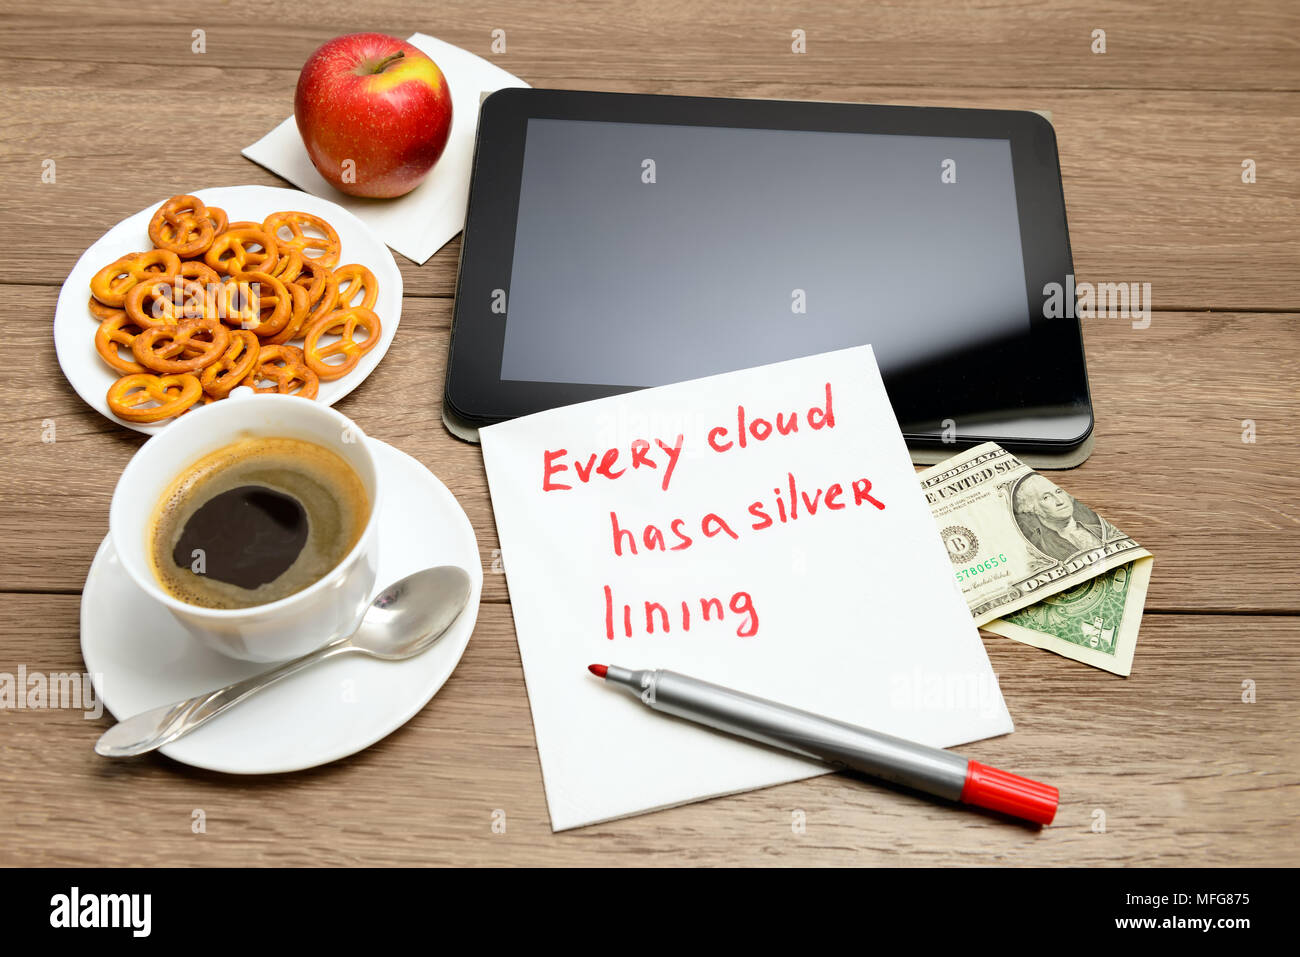 Wooden table with coffee, some food and napkin message proverb Every cloud has a silver lining - Stock Image